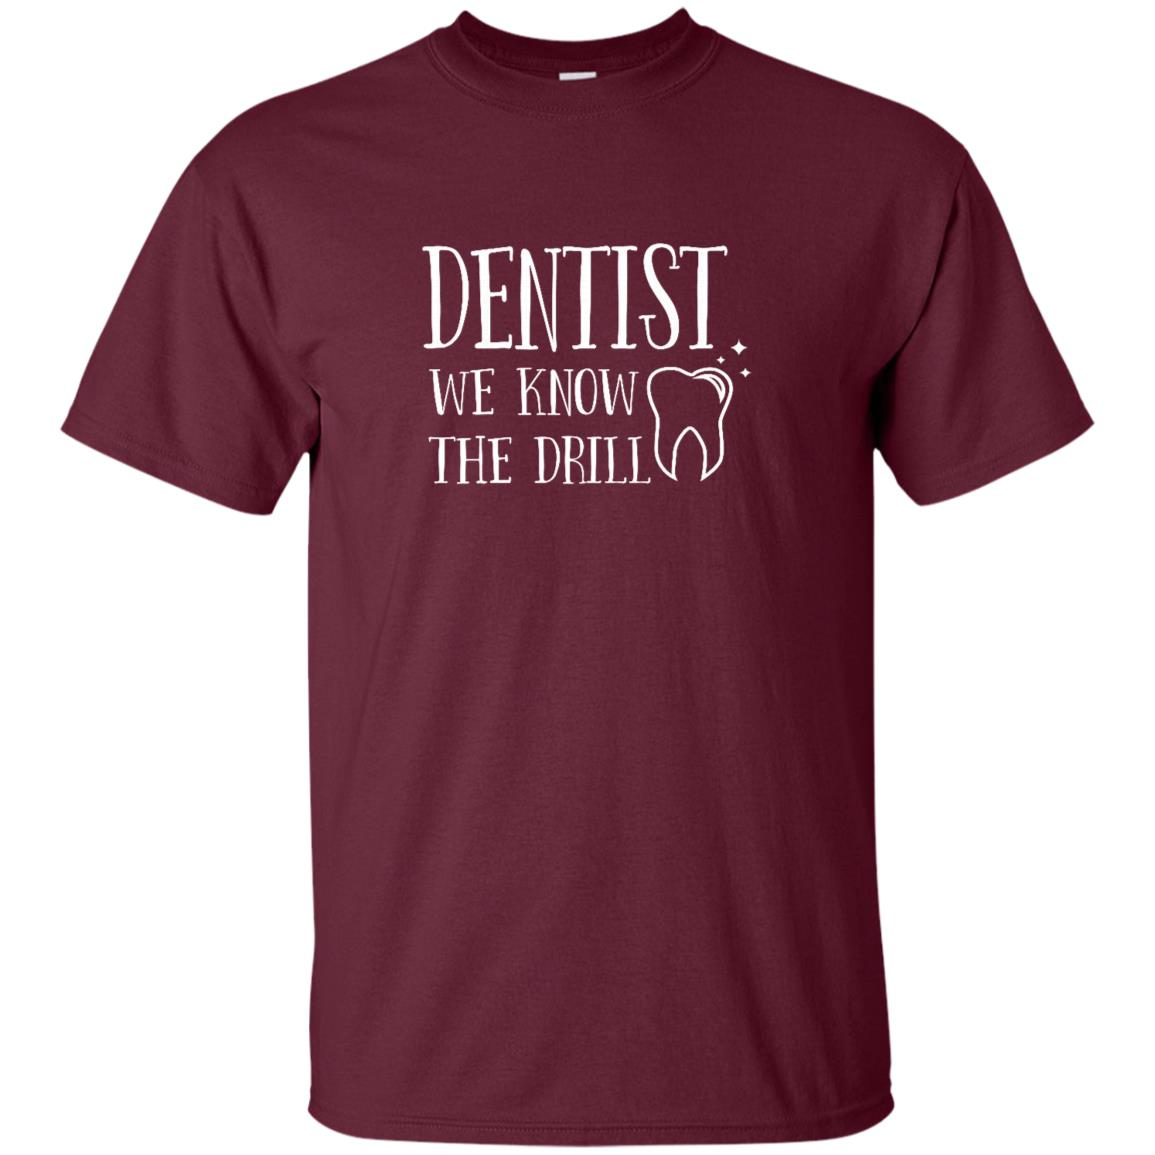 Dentist We Know The Drill – Funny Slogan Unisex Short Sleeve